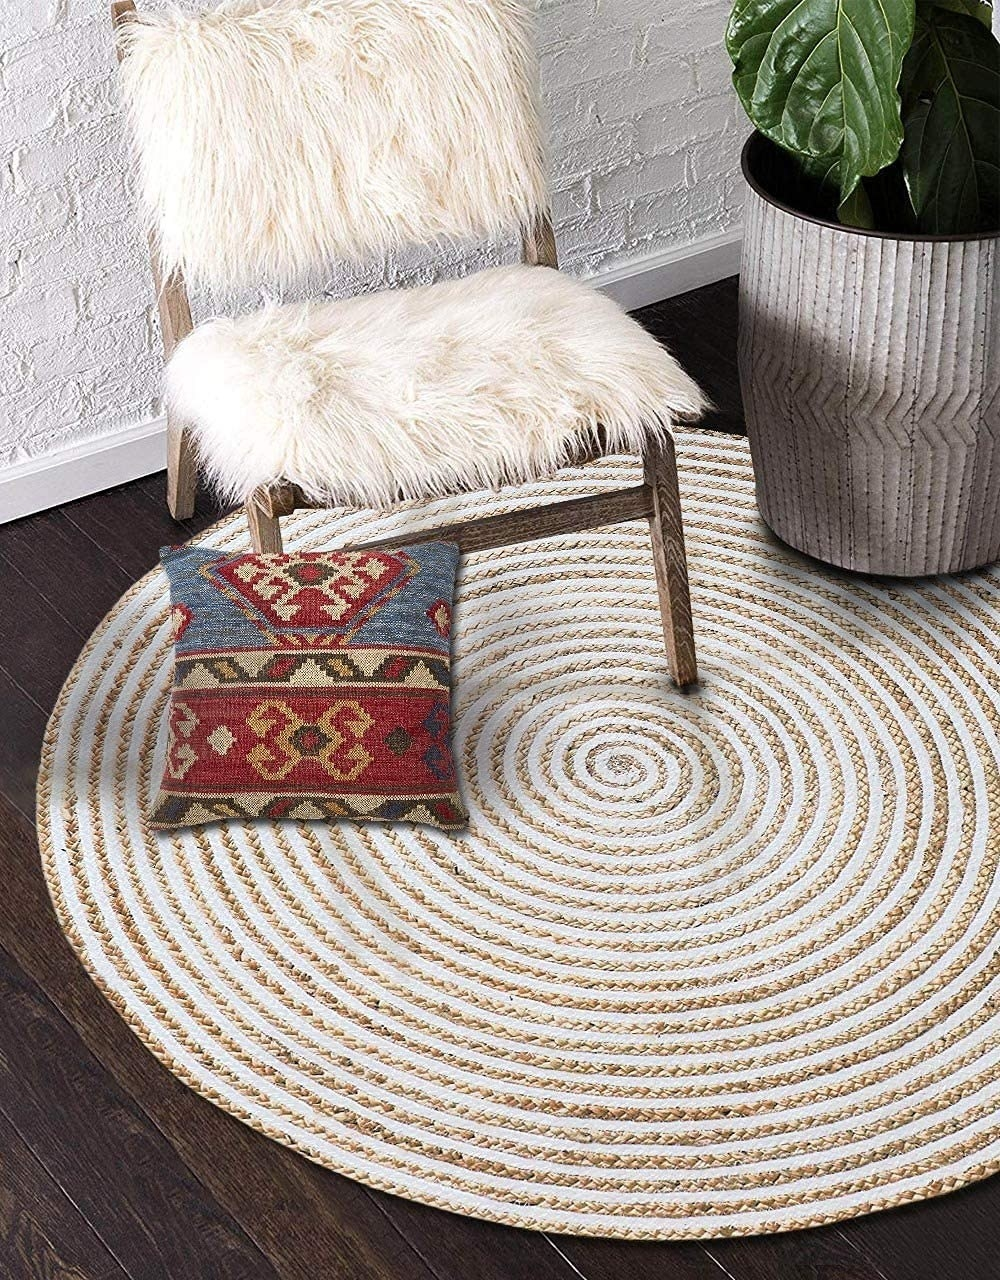 A round braided gold and beige rug